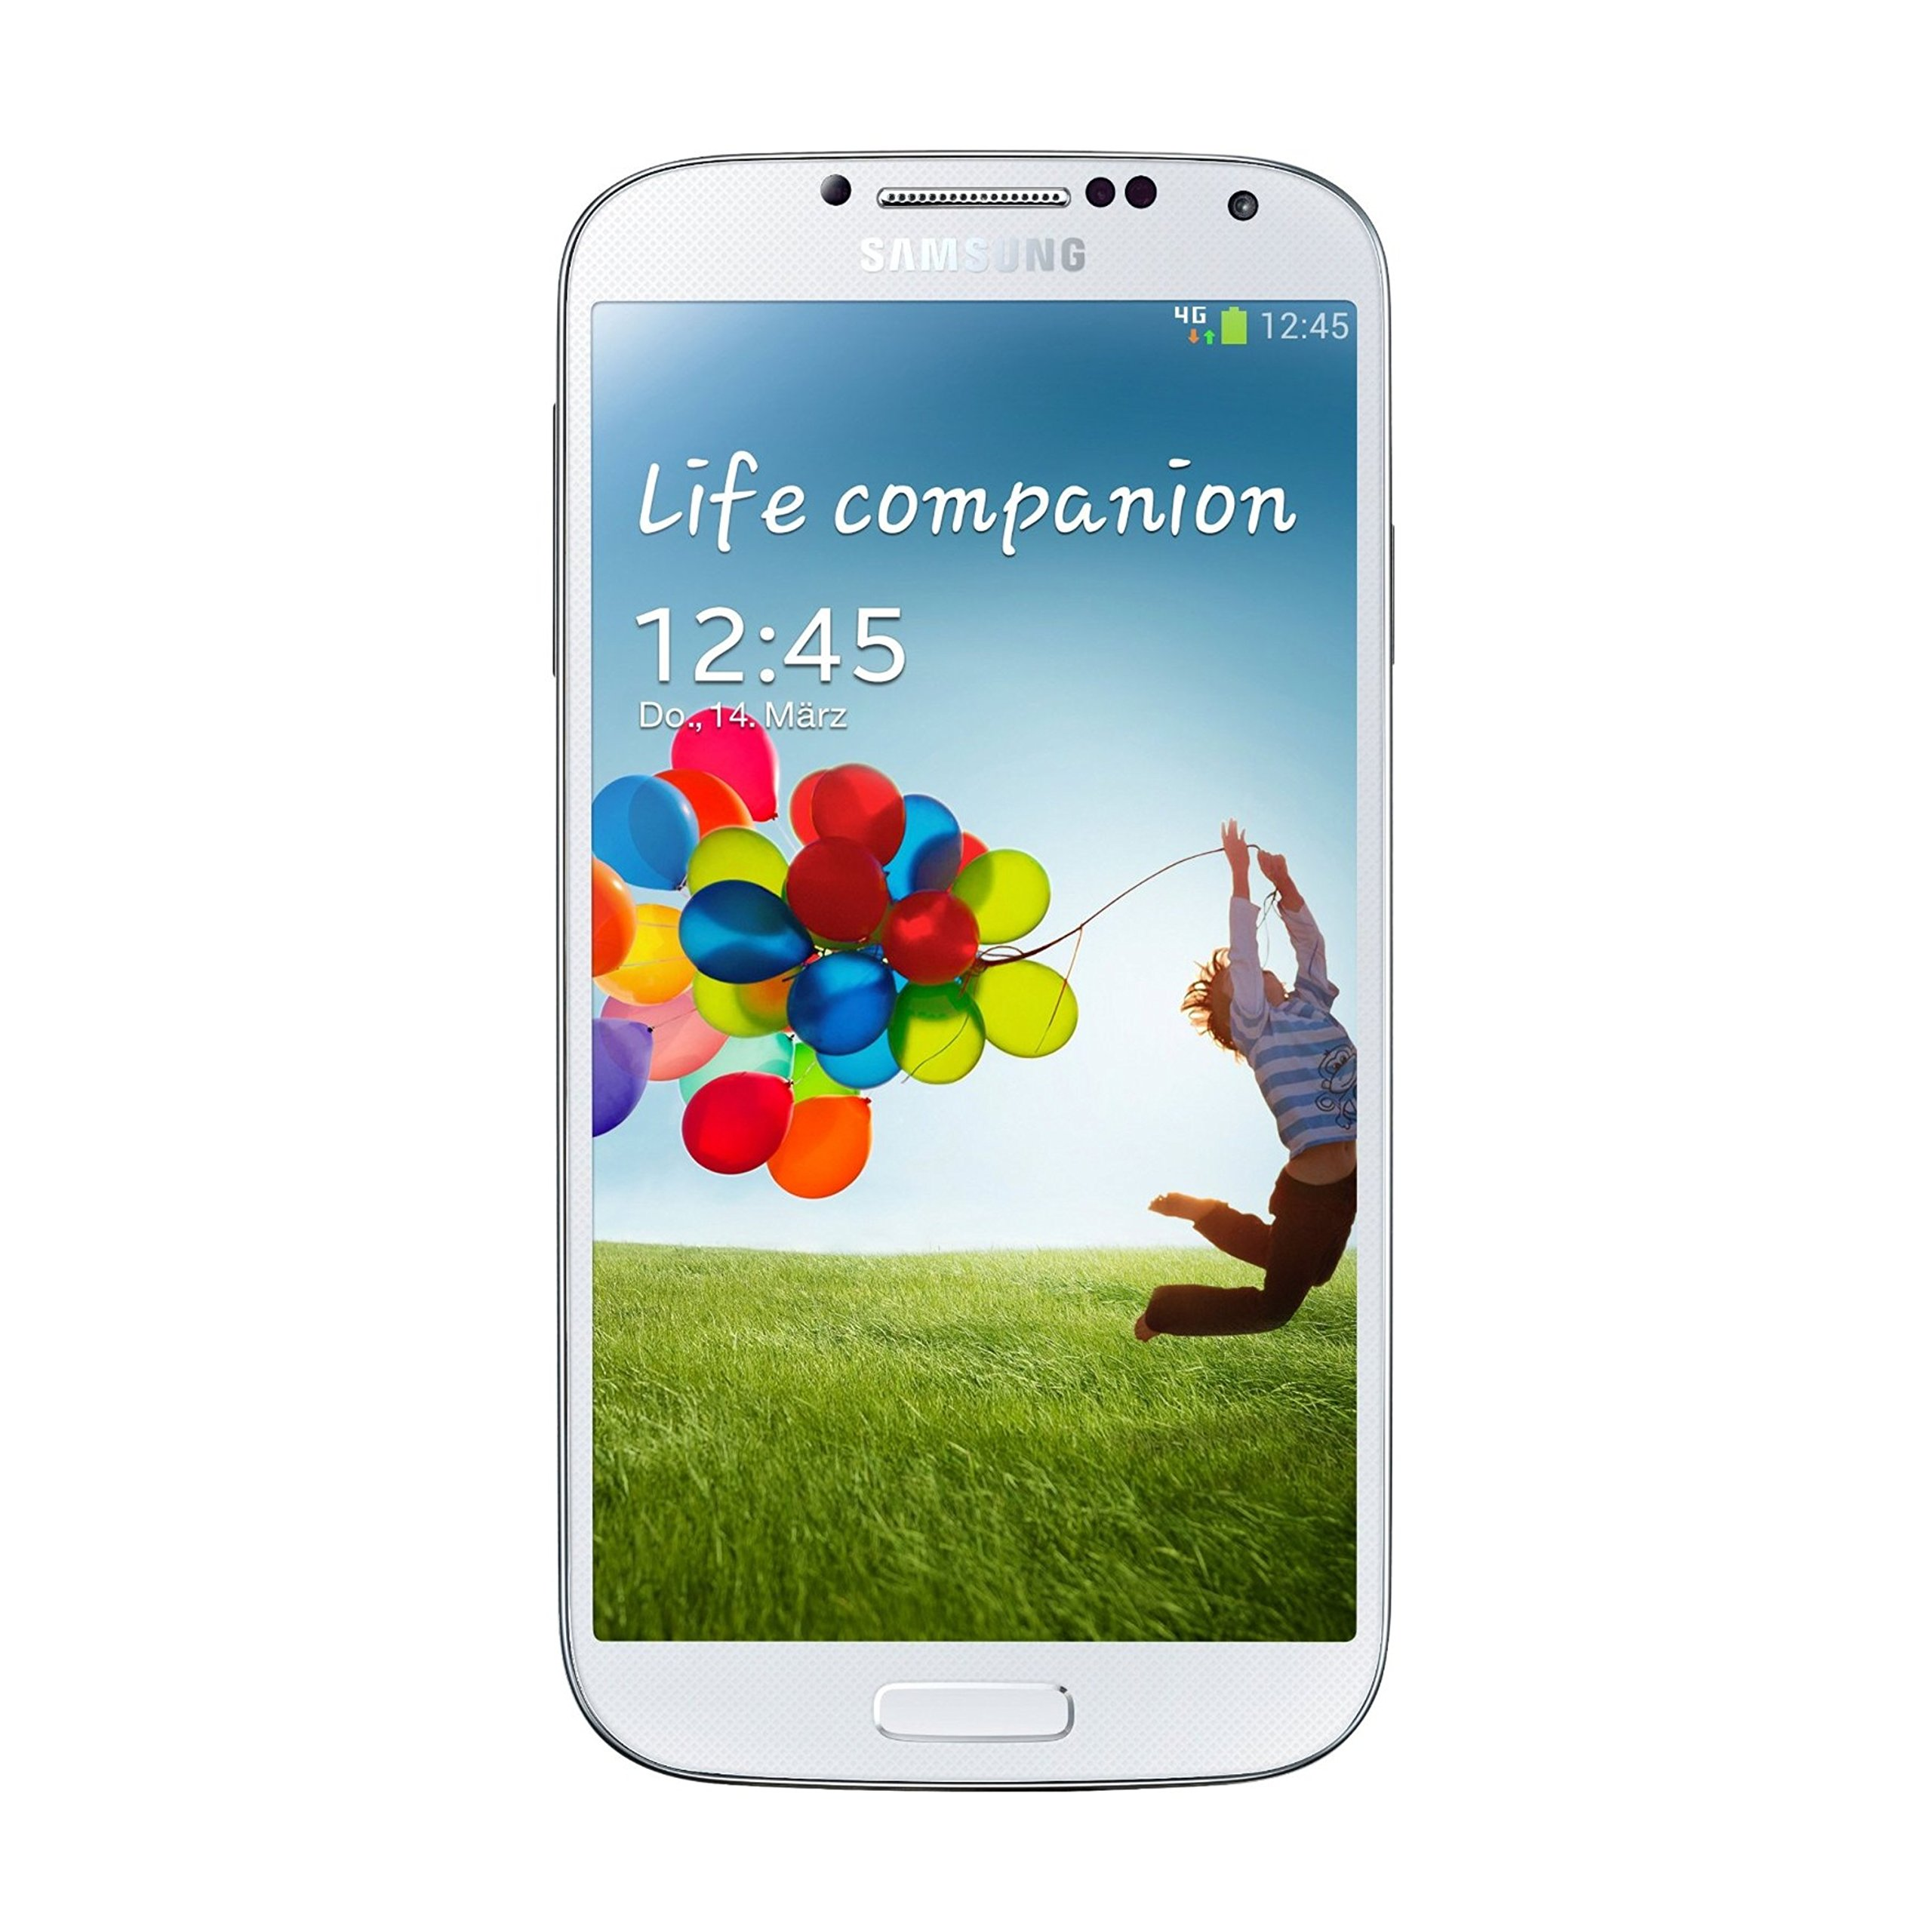 Samsung Galaxy S4, White Frost 16GB (AT&T) by Samsung